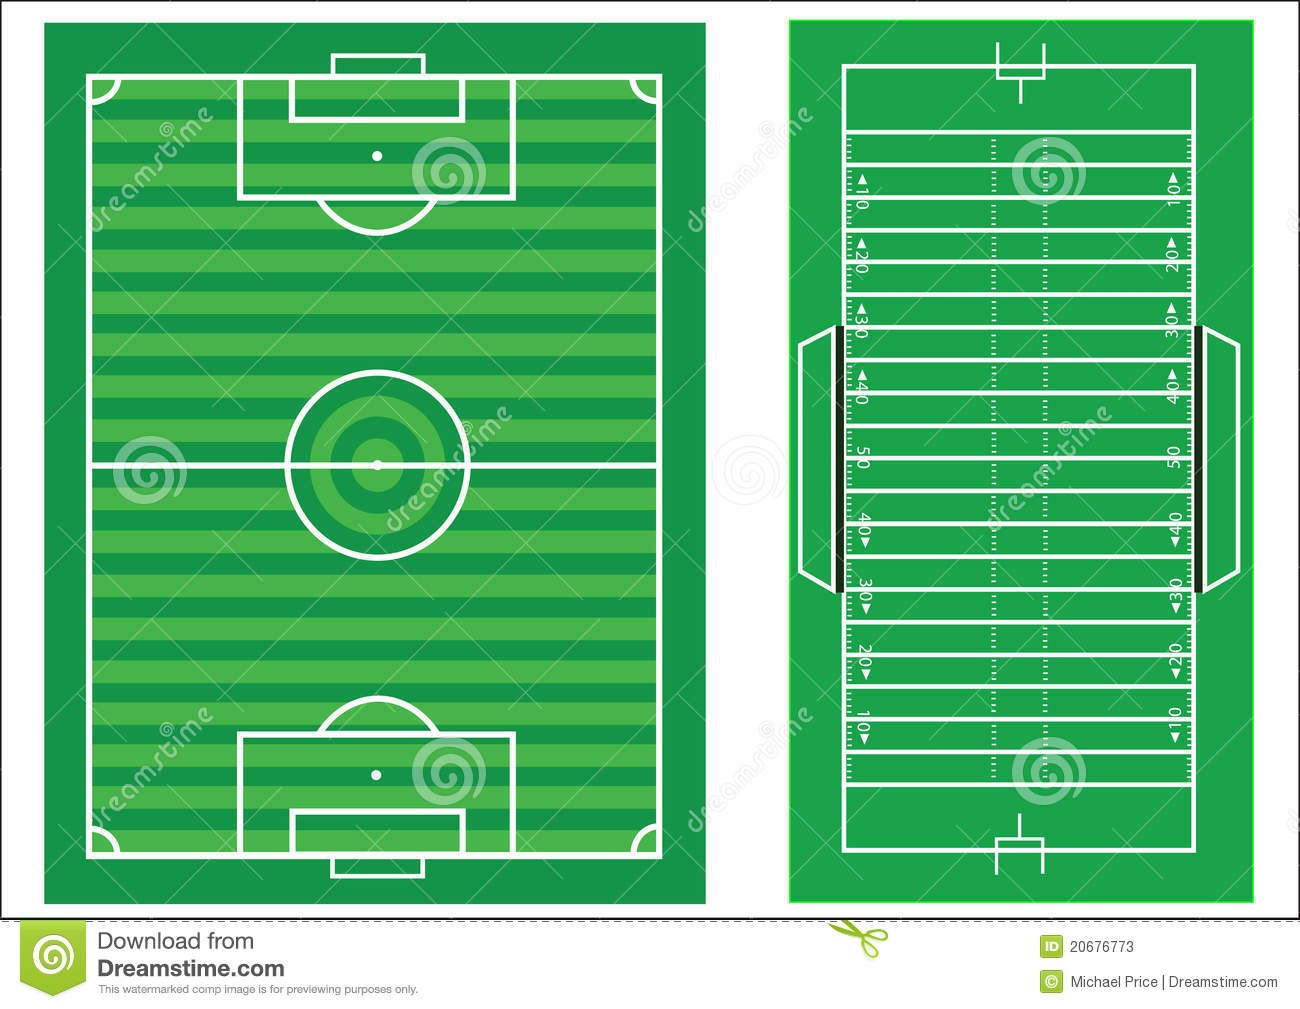 Scale Diagram Of Soccer And American Football Stock Photos